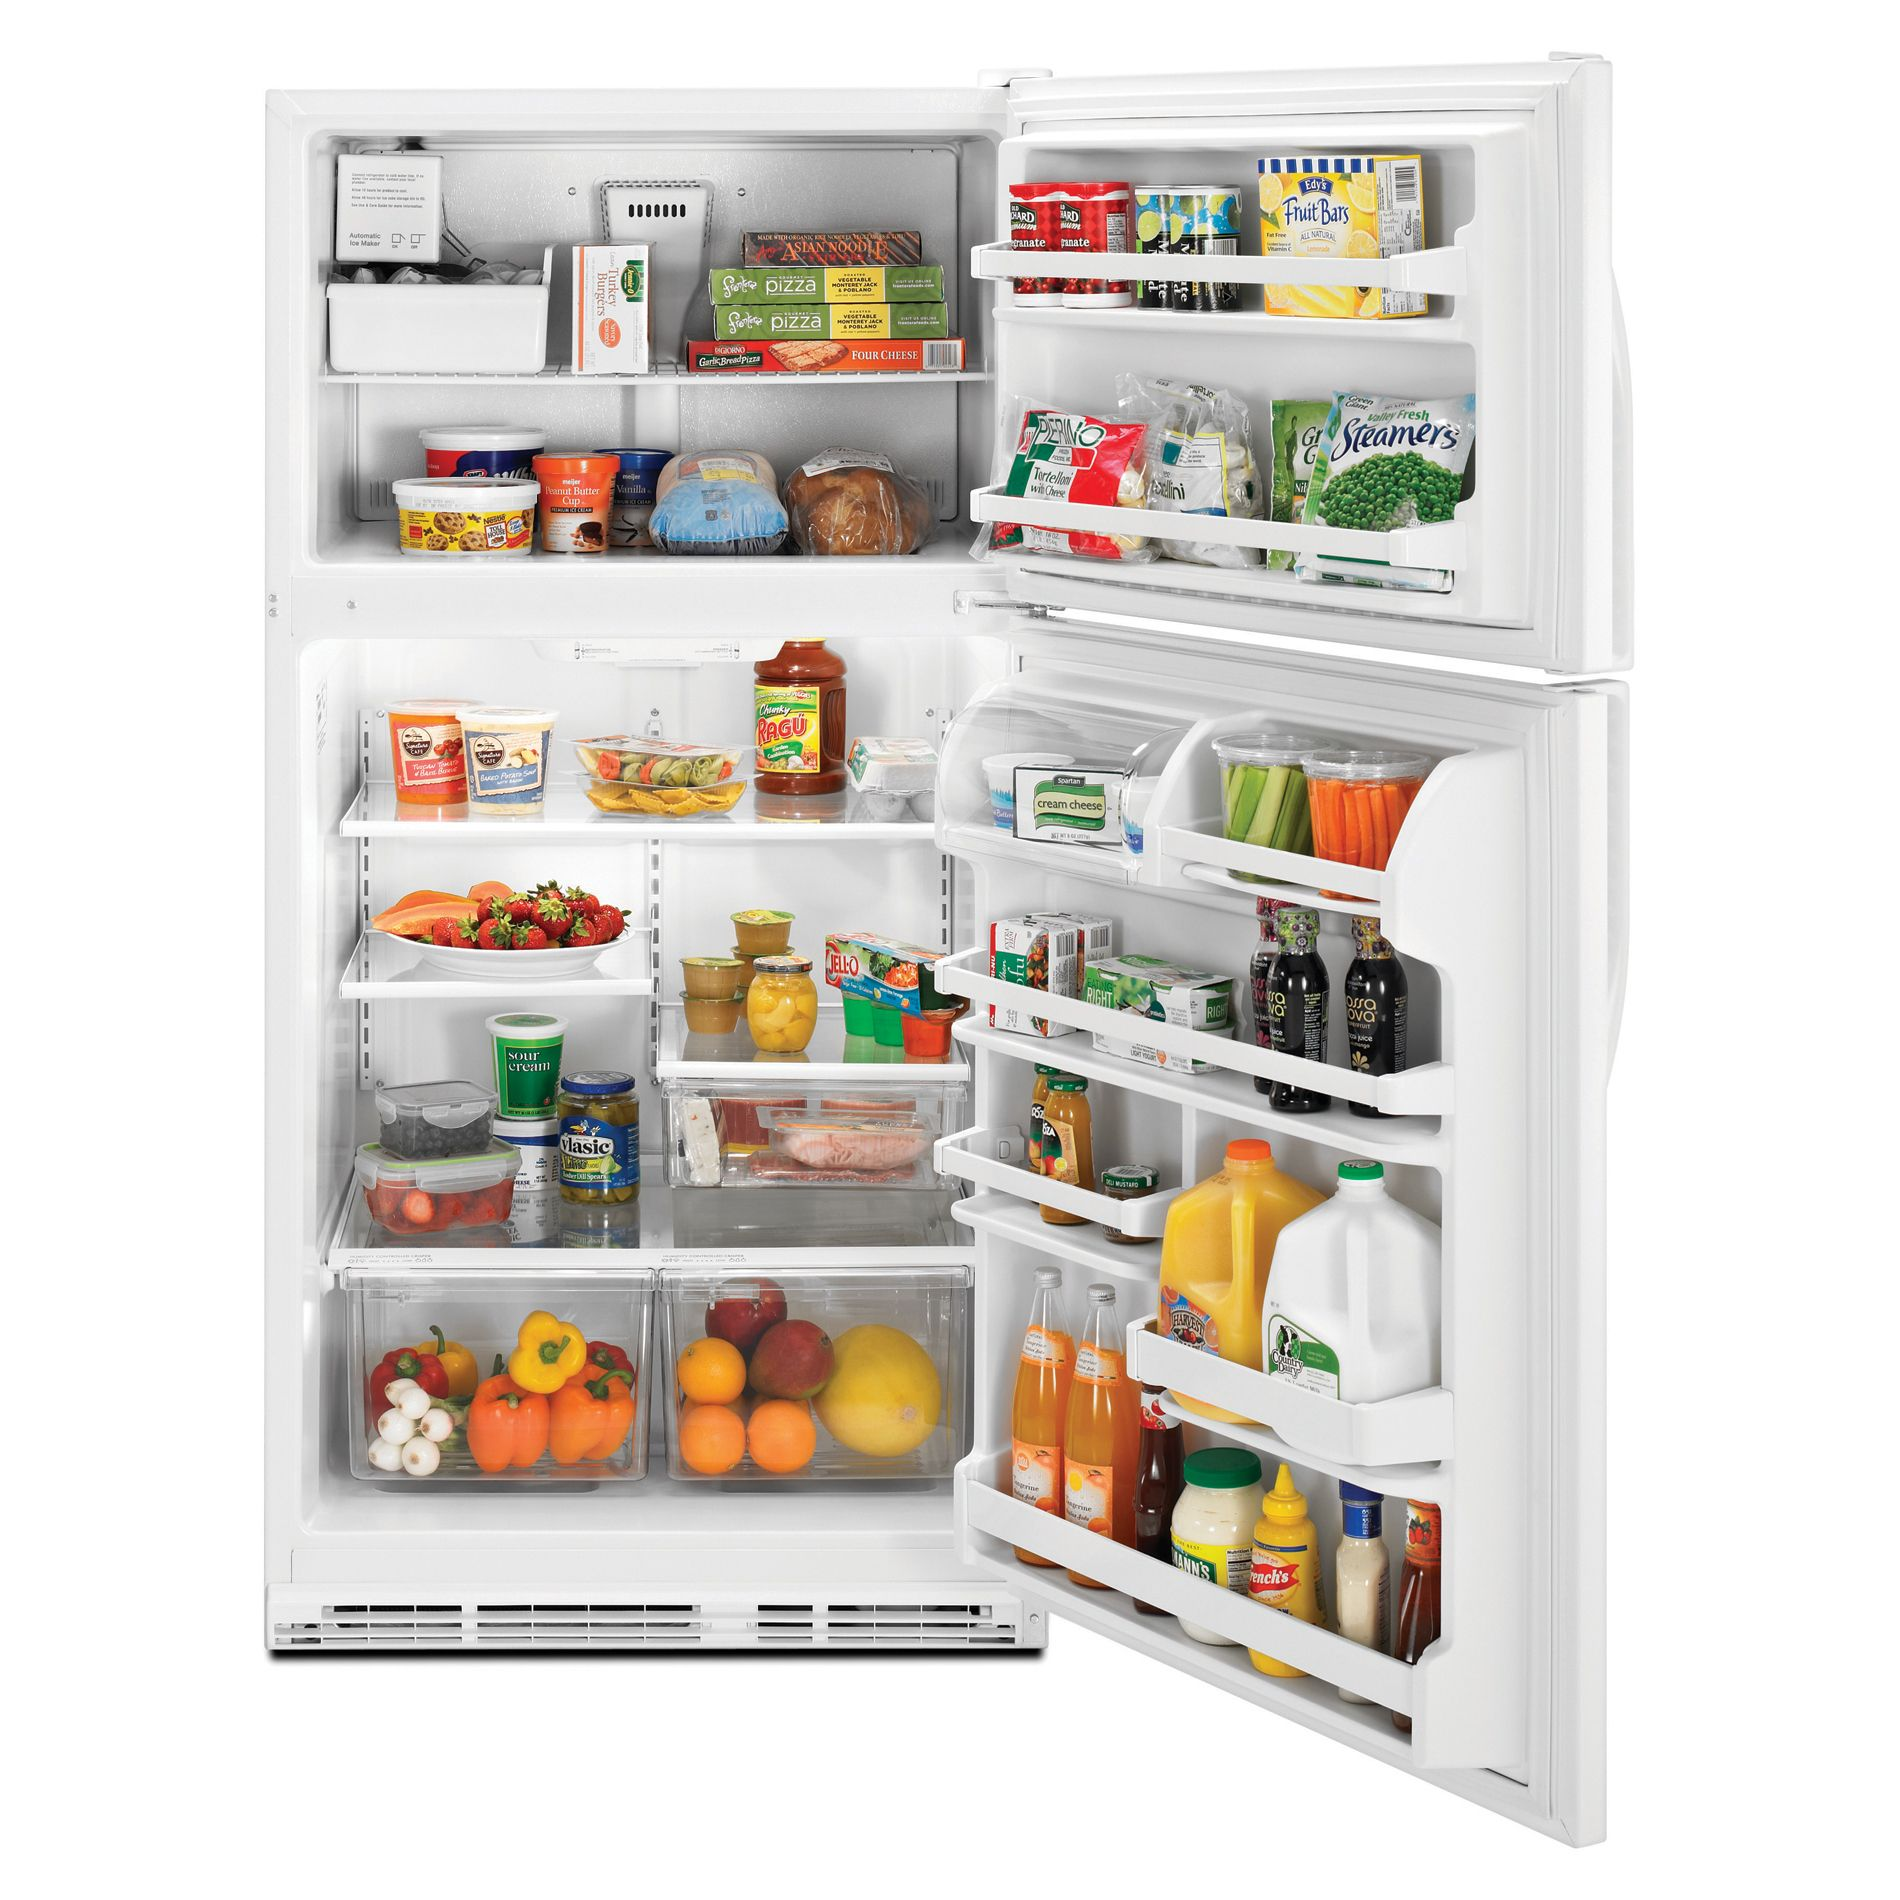 Kenmore 20.9 cu. ft. Top Freezer Refrigerator (6023)